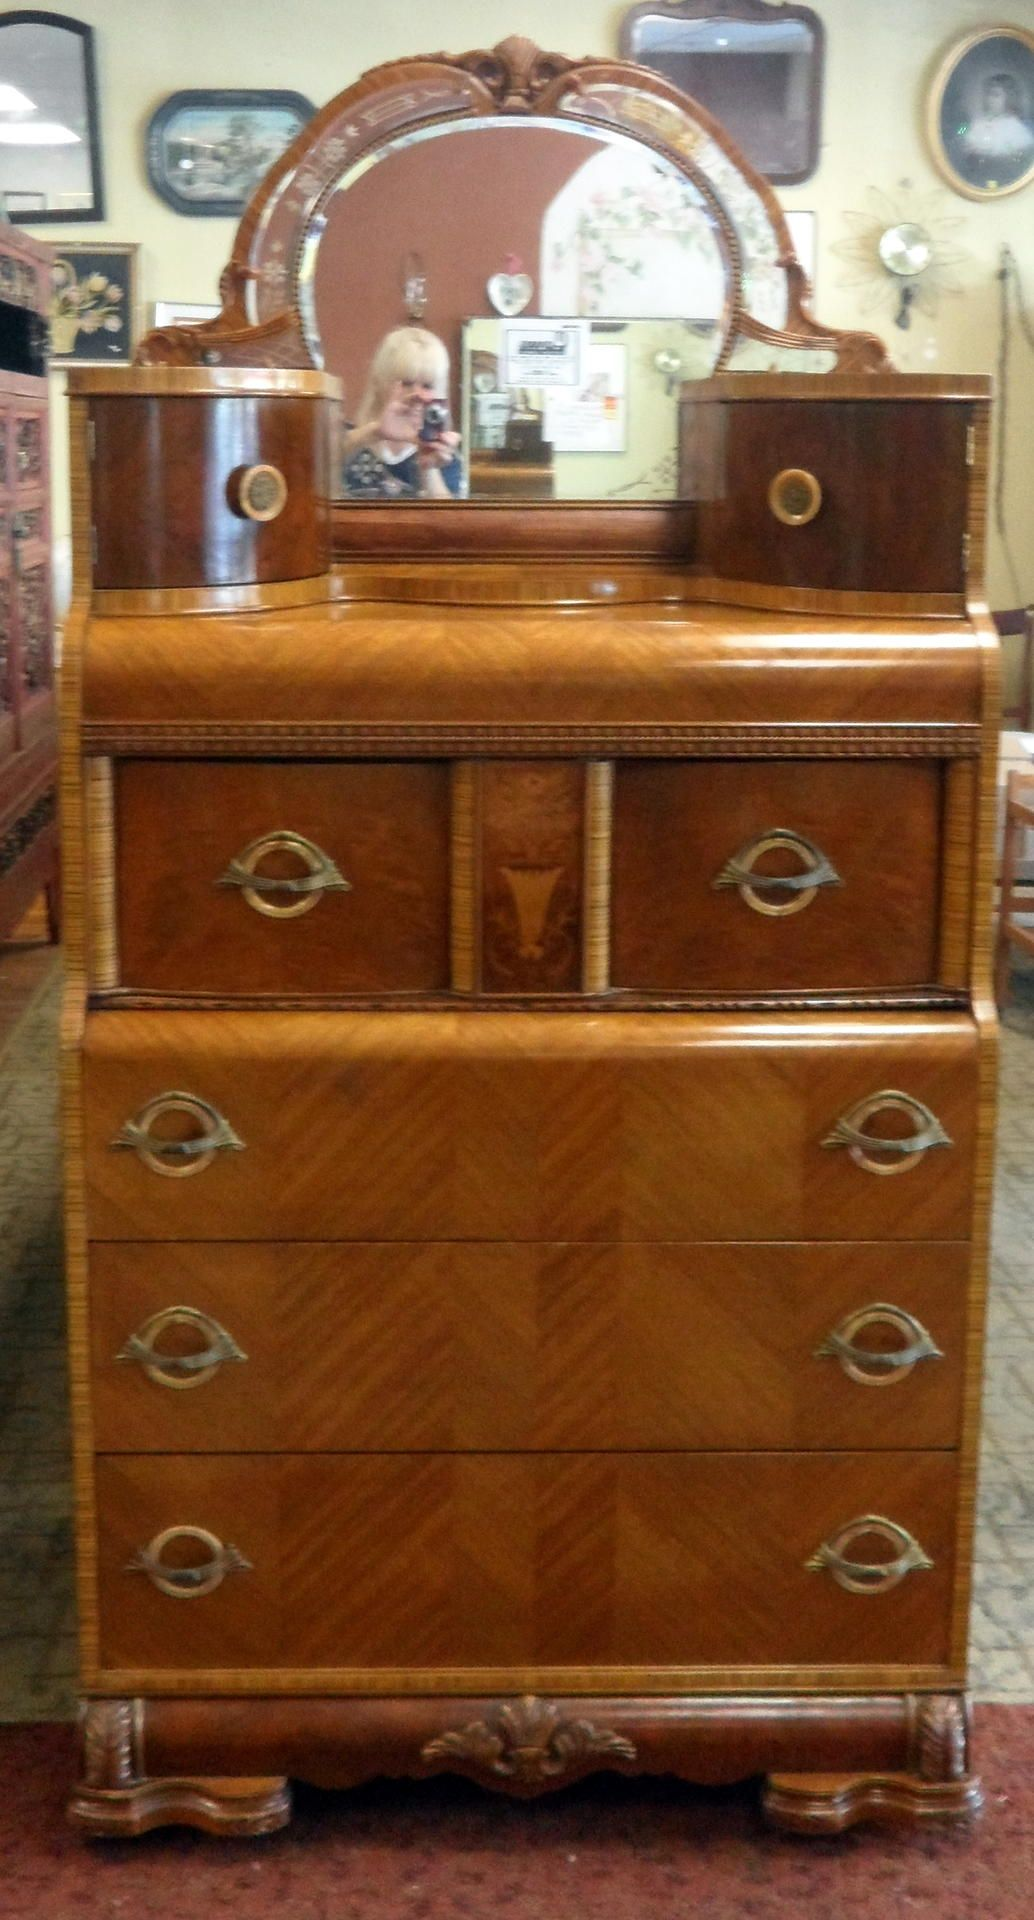 Mirrored Tall Boy Antique Tall Boy Dresser With Mirror Bestdressers 2019